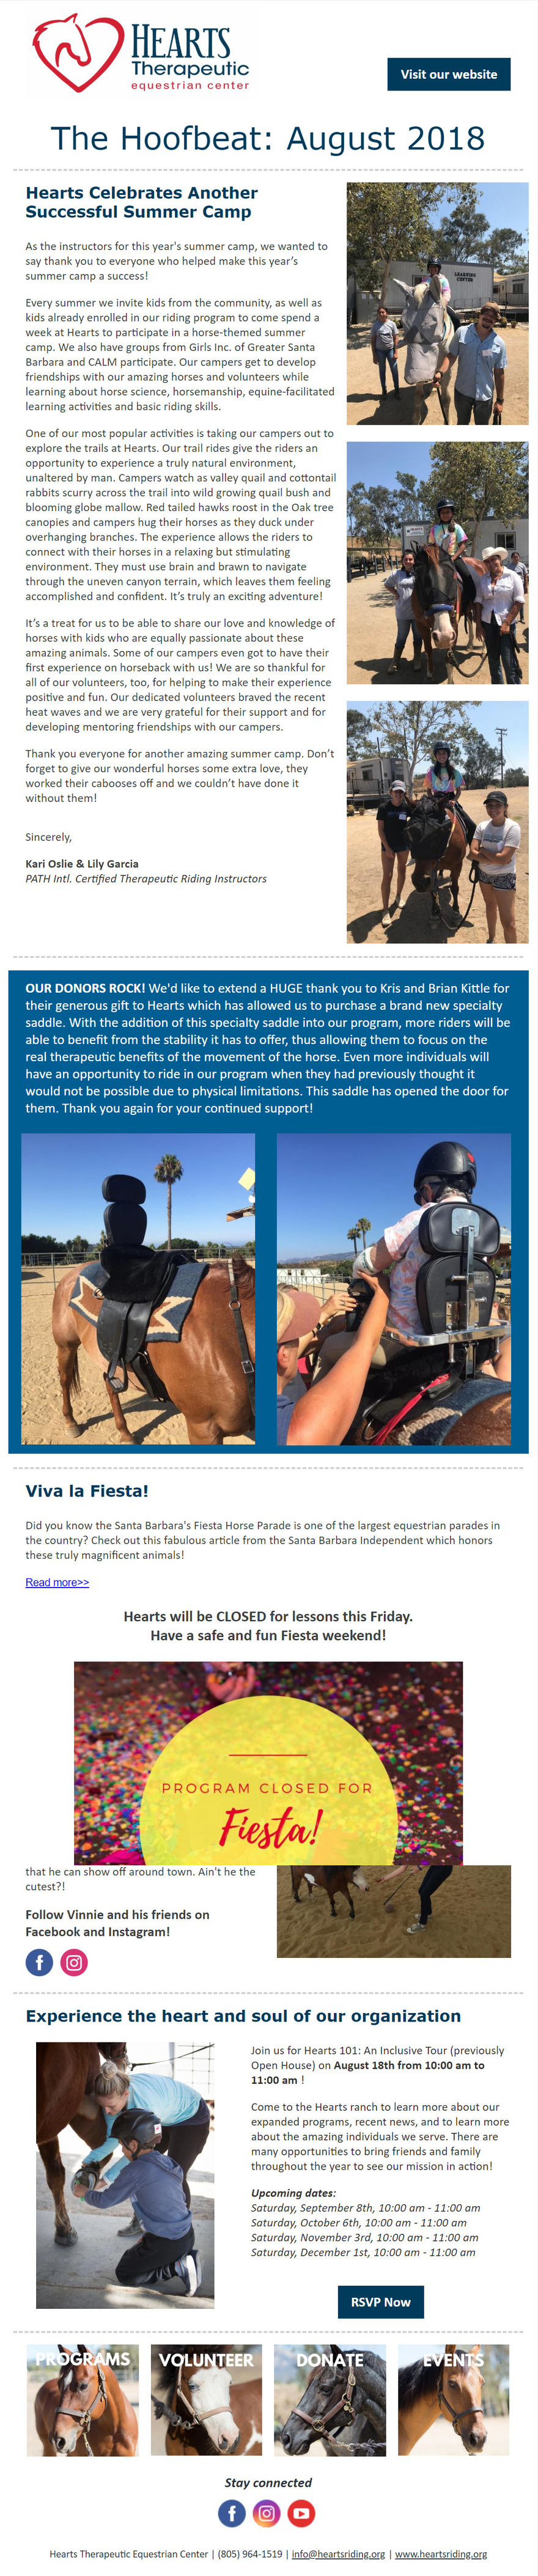 The Hoofbeat Newsletter | August 2018 | Hearts Riding